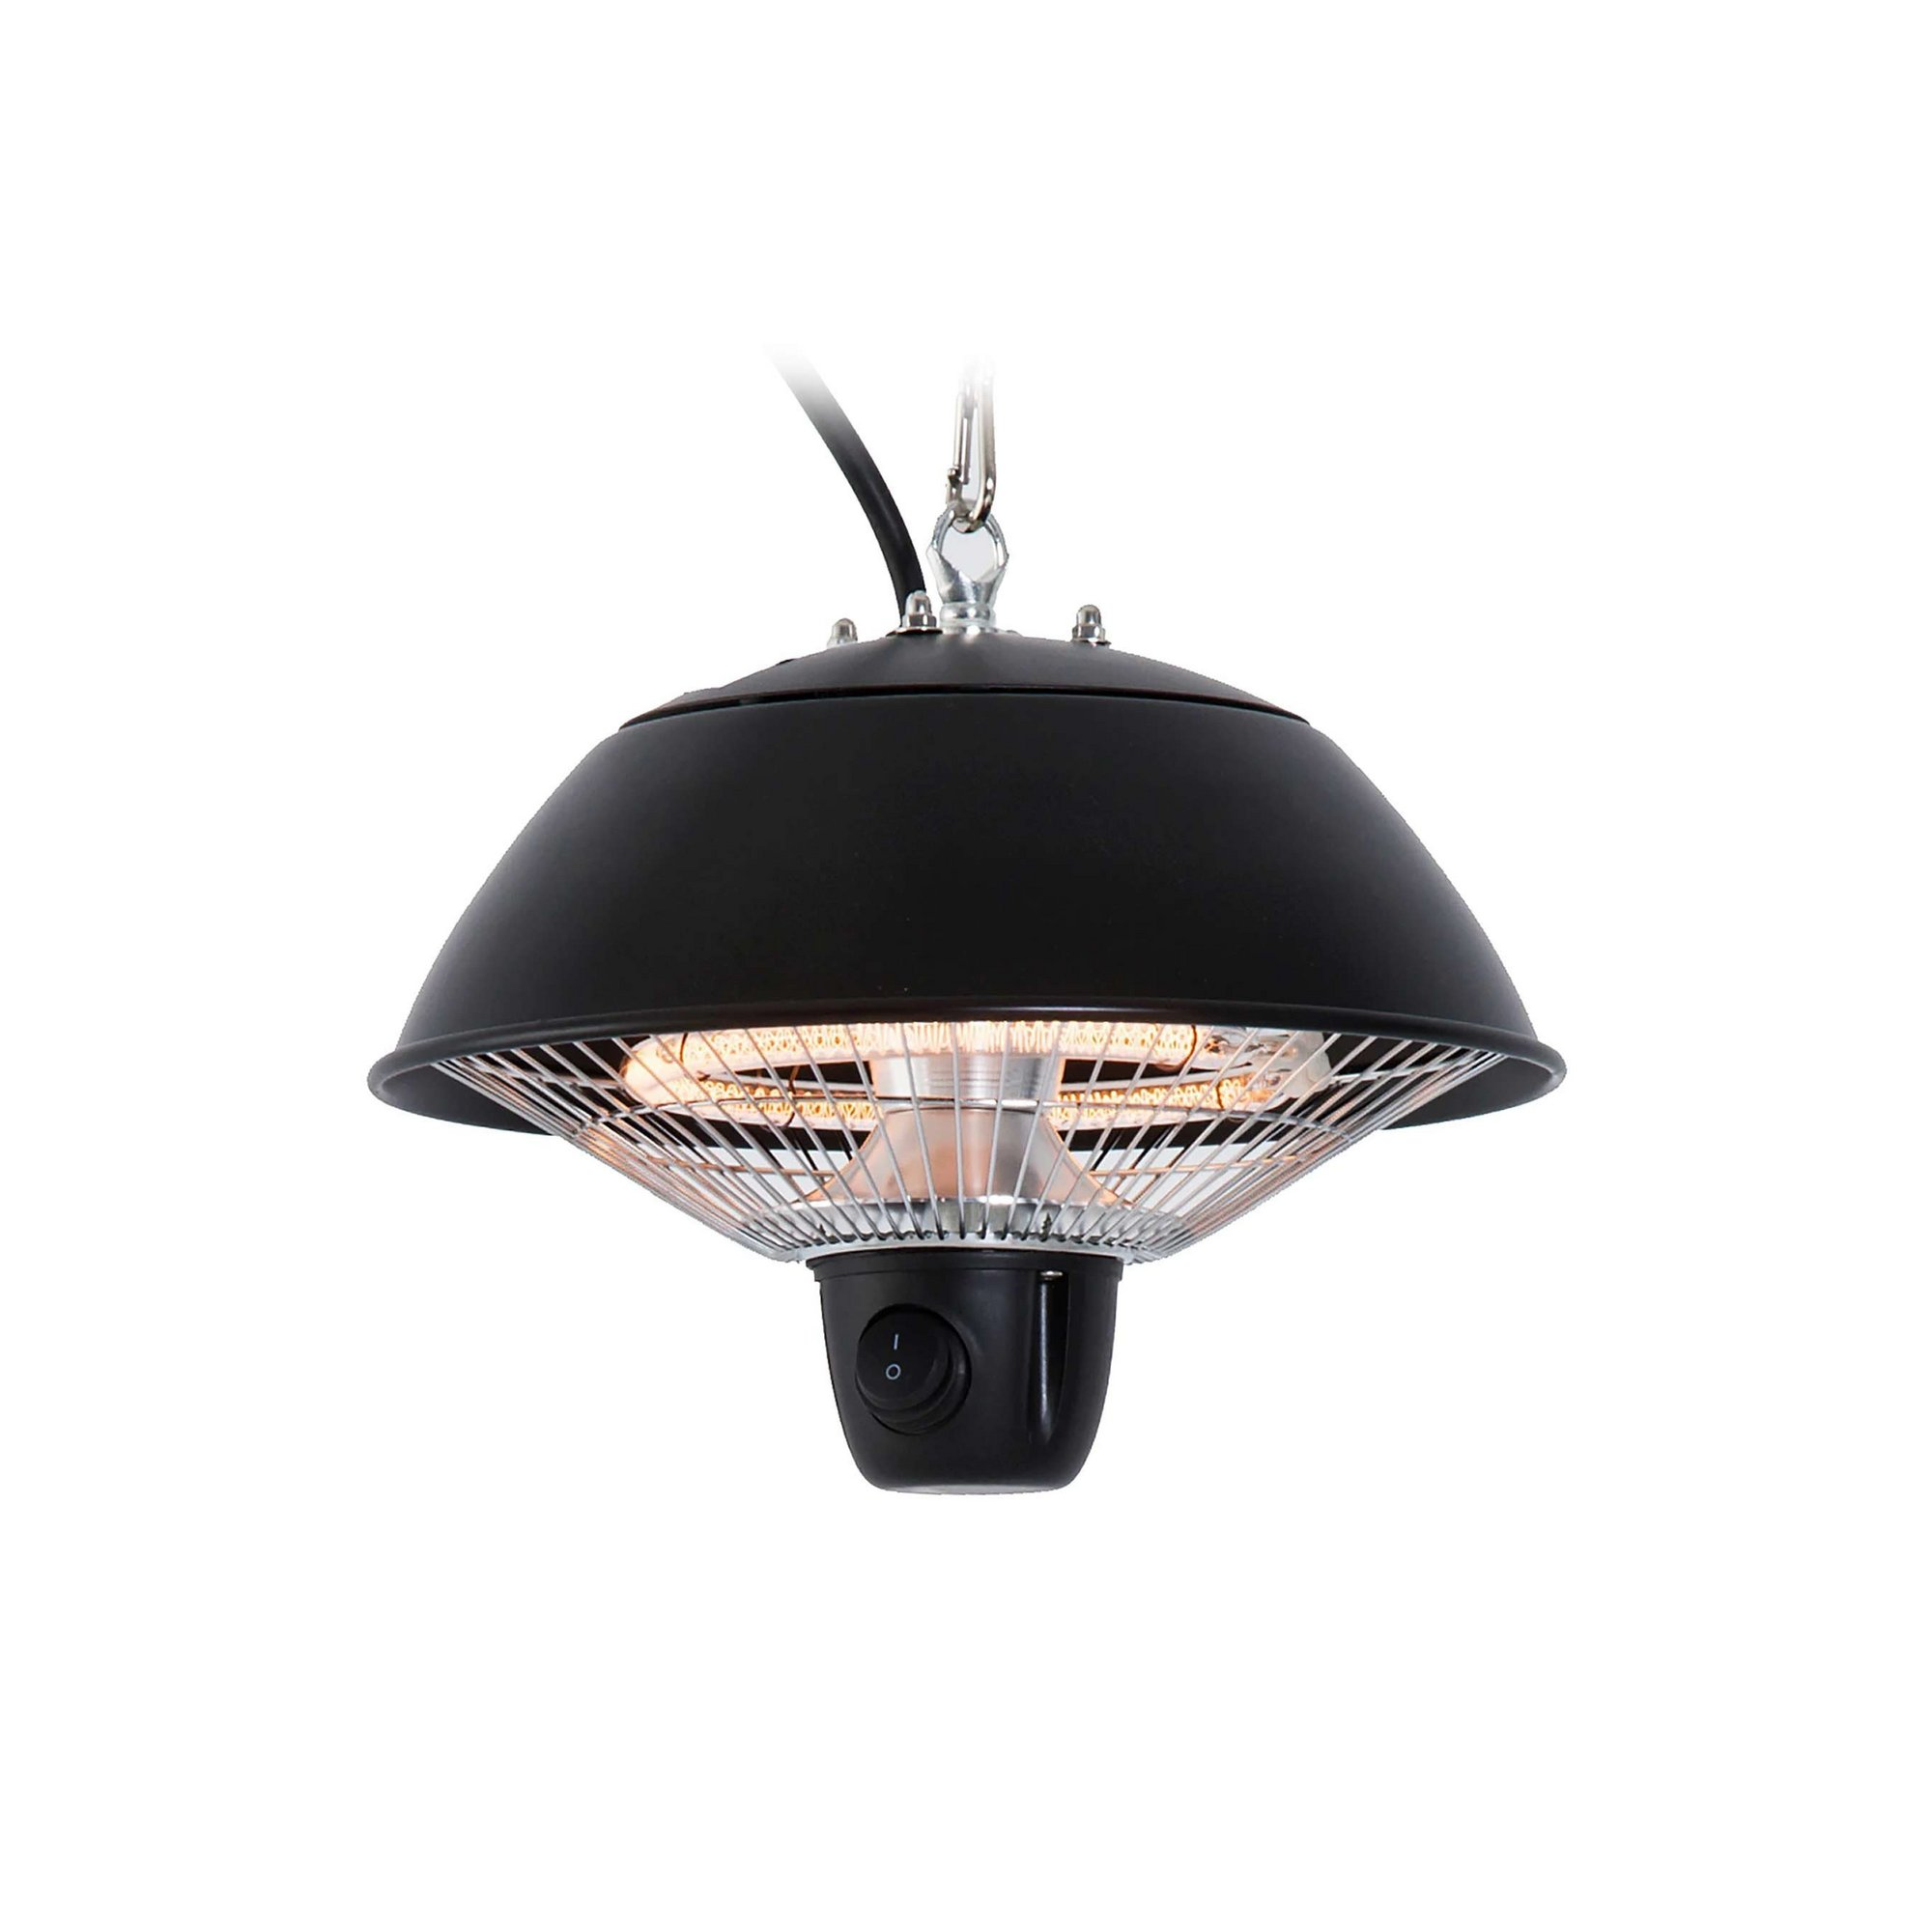 Image of Patio Ceiling 600W Electric Heater